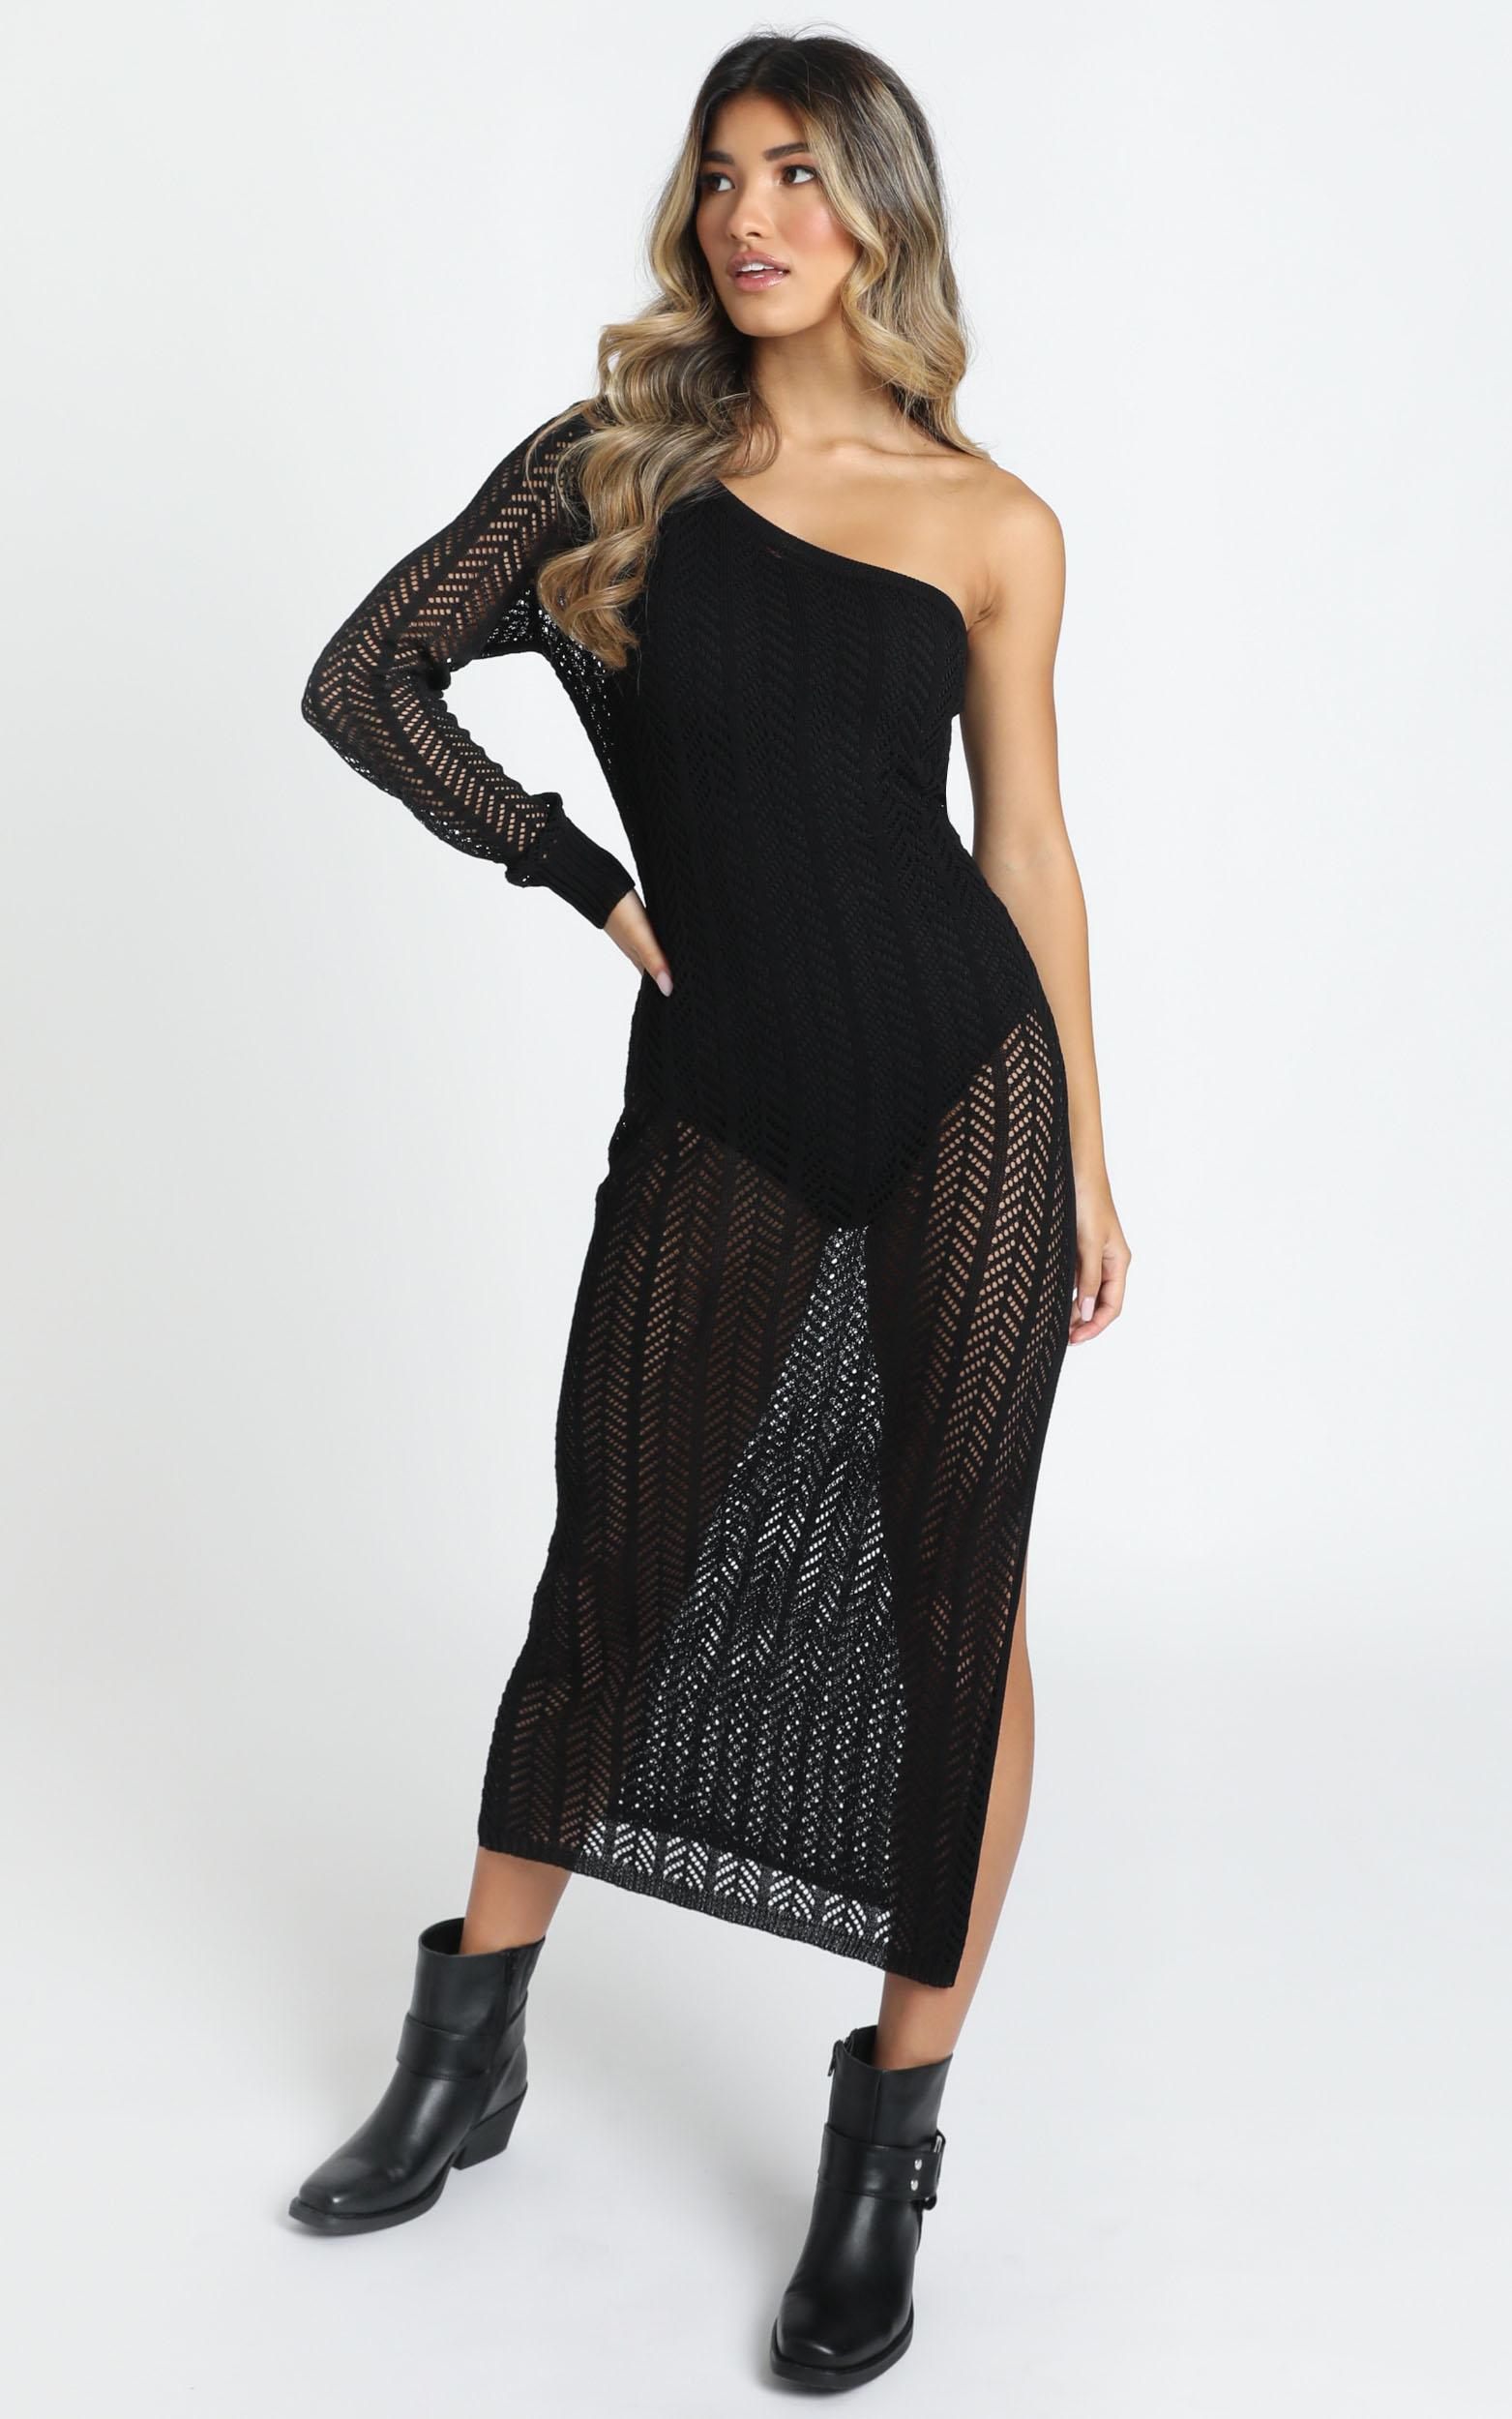 Drop Your Love Knit Dress in black - 14 (XL), Black, hi-res image number null